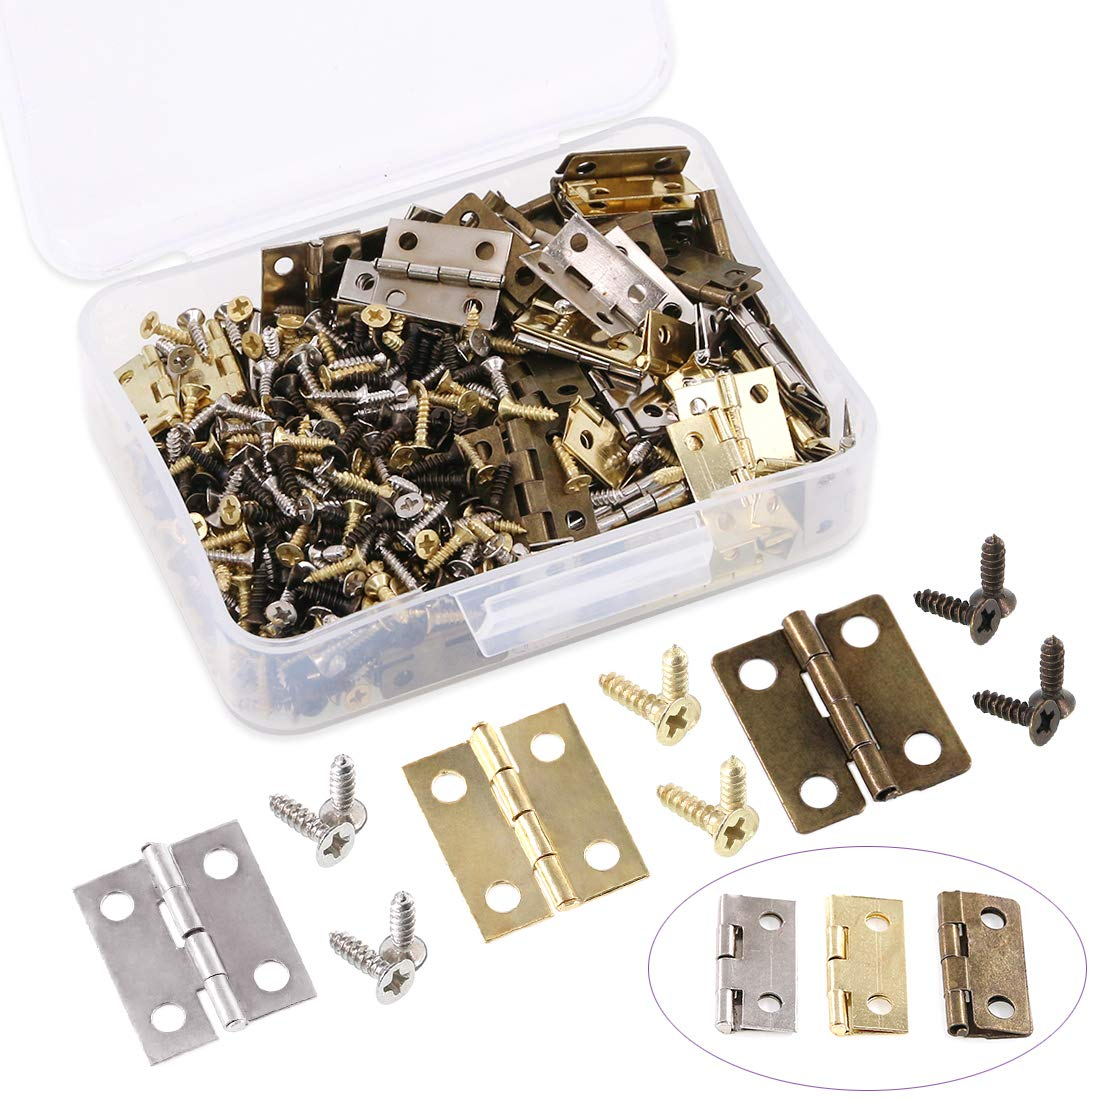 Swpeet 90Pcs 3 Colors Antique Door Mini Hinges with 360Pcs Replacement Hinge Screw, Metal Hasp Cabinet Latch Hasp with Screws for Wooden Jewelry Box Cabinet Decorative - Gold, Bronze, Black